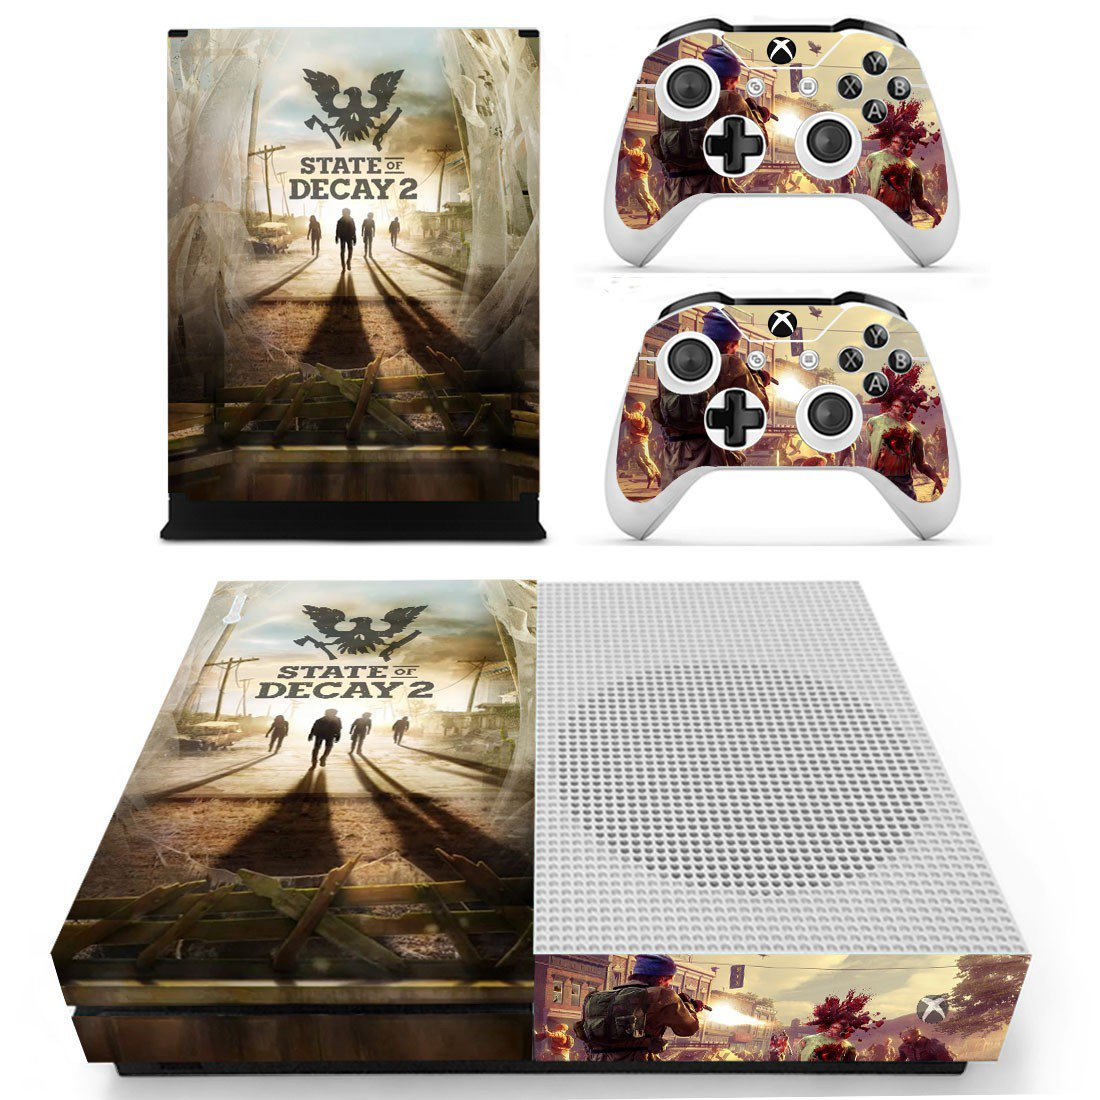 State of Decay 2 decal skin sticker for Xbox One S console and controllers